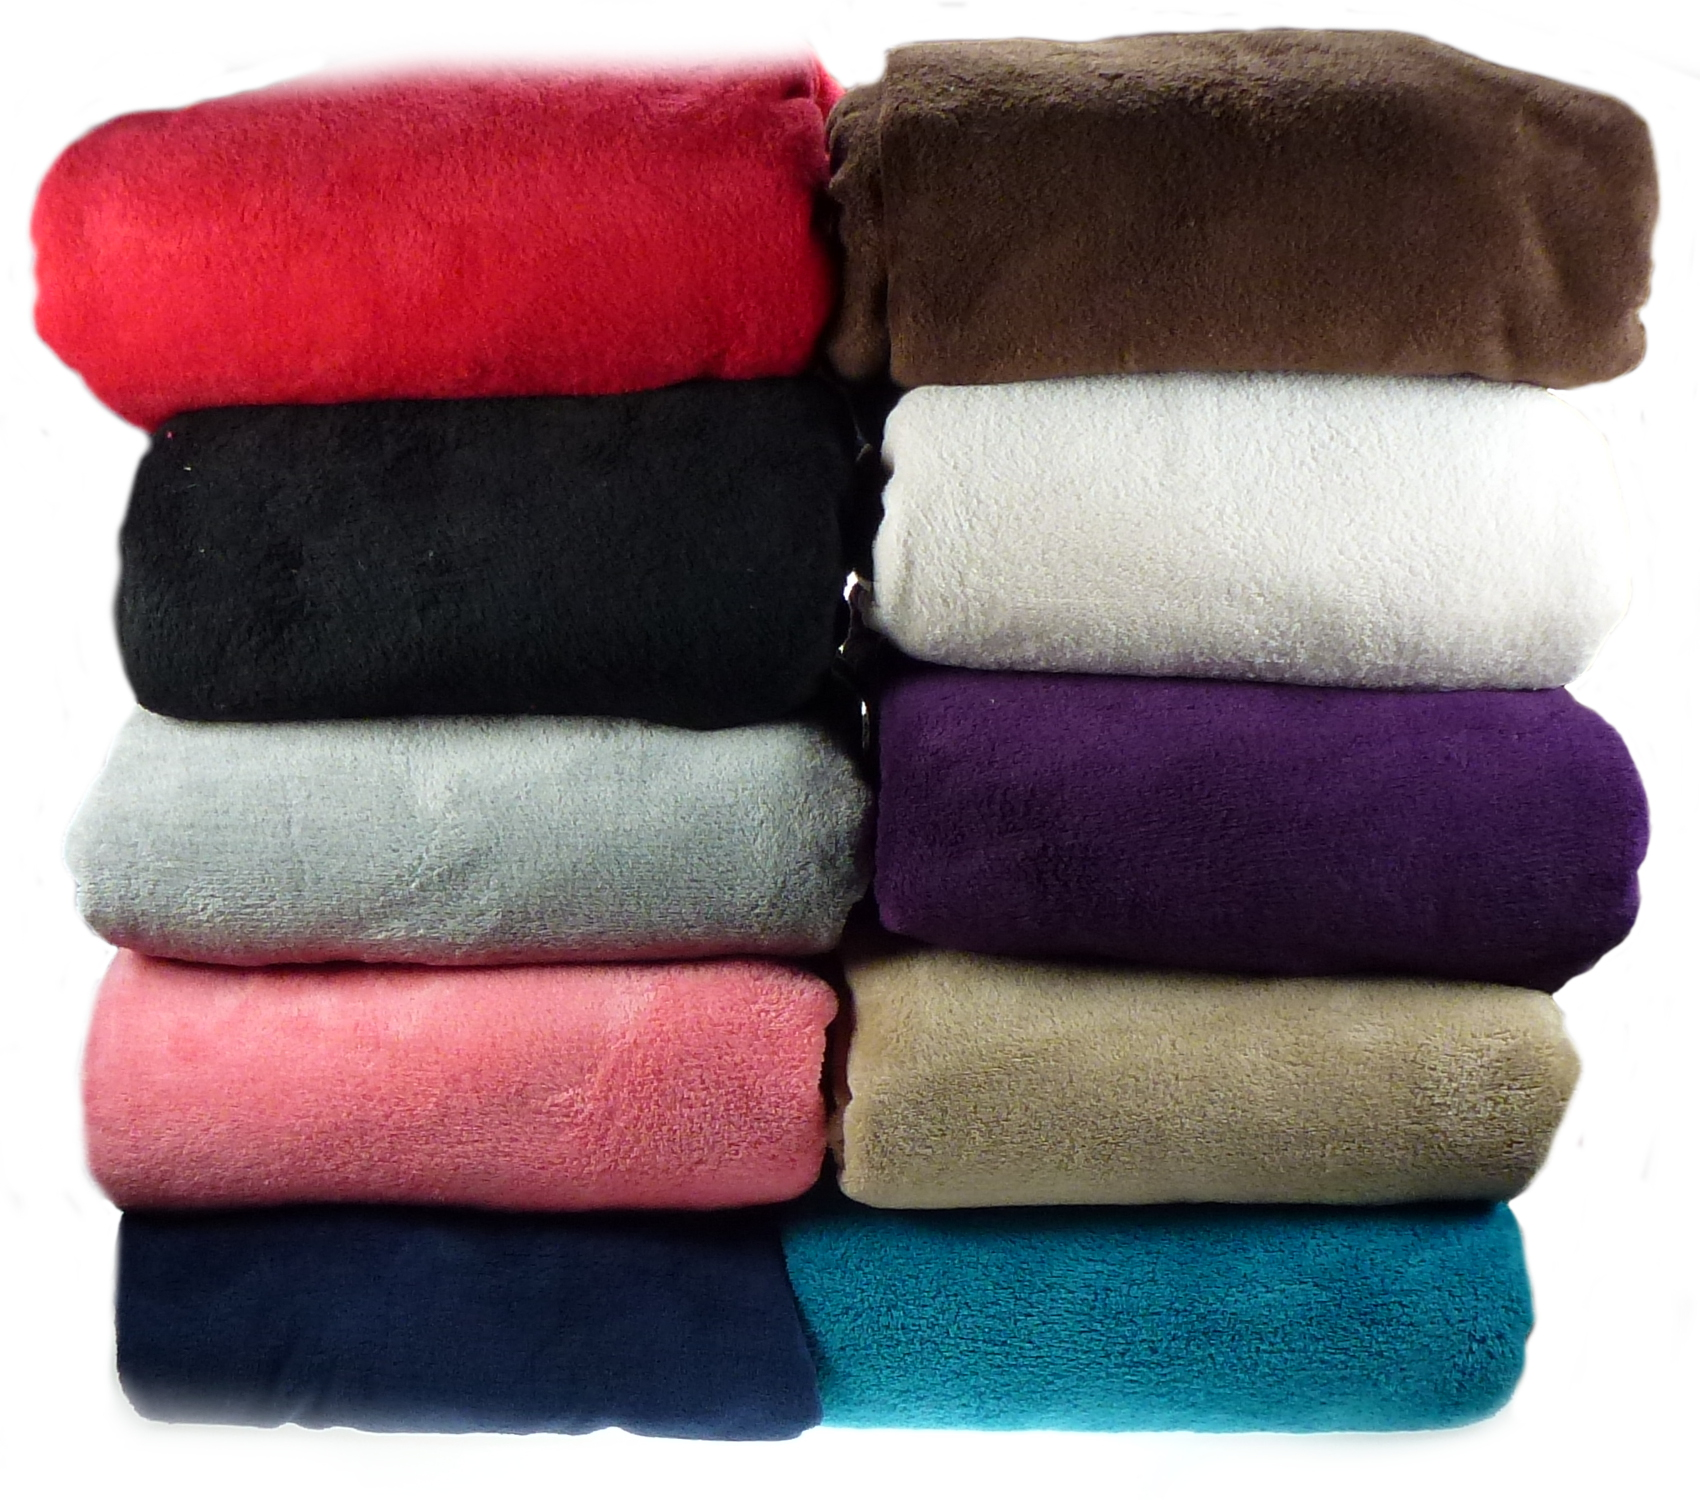 luxury soft cosy coral fleece throw over bed sofa home fleecy  - luxury soft cosy coral fleece throw over bed sofa home fleecy blanket  x